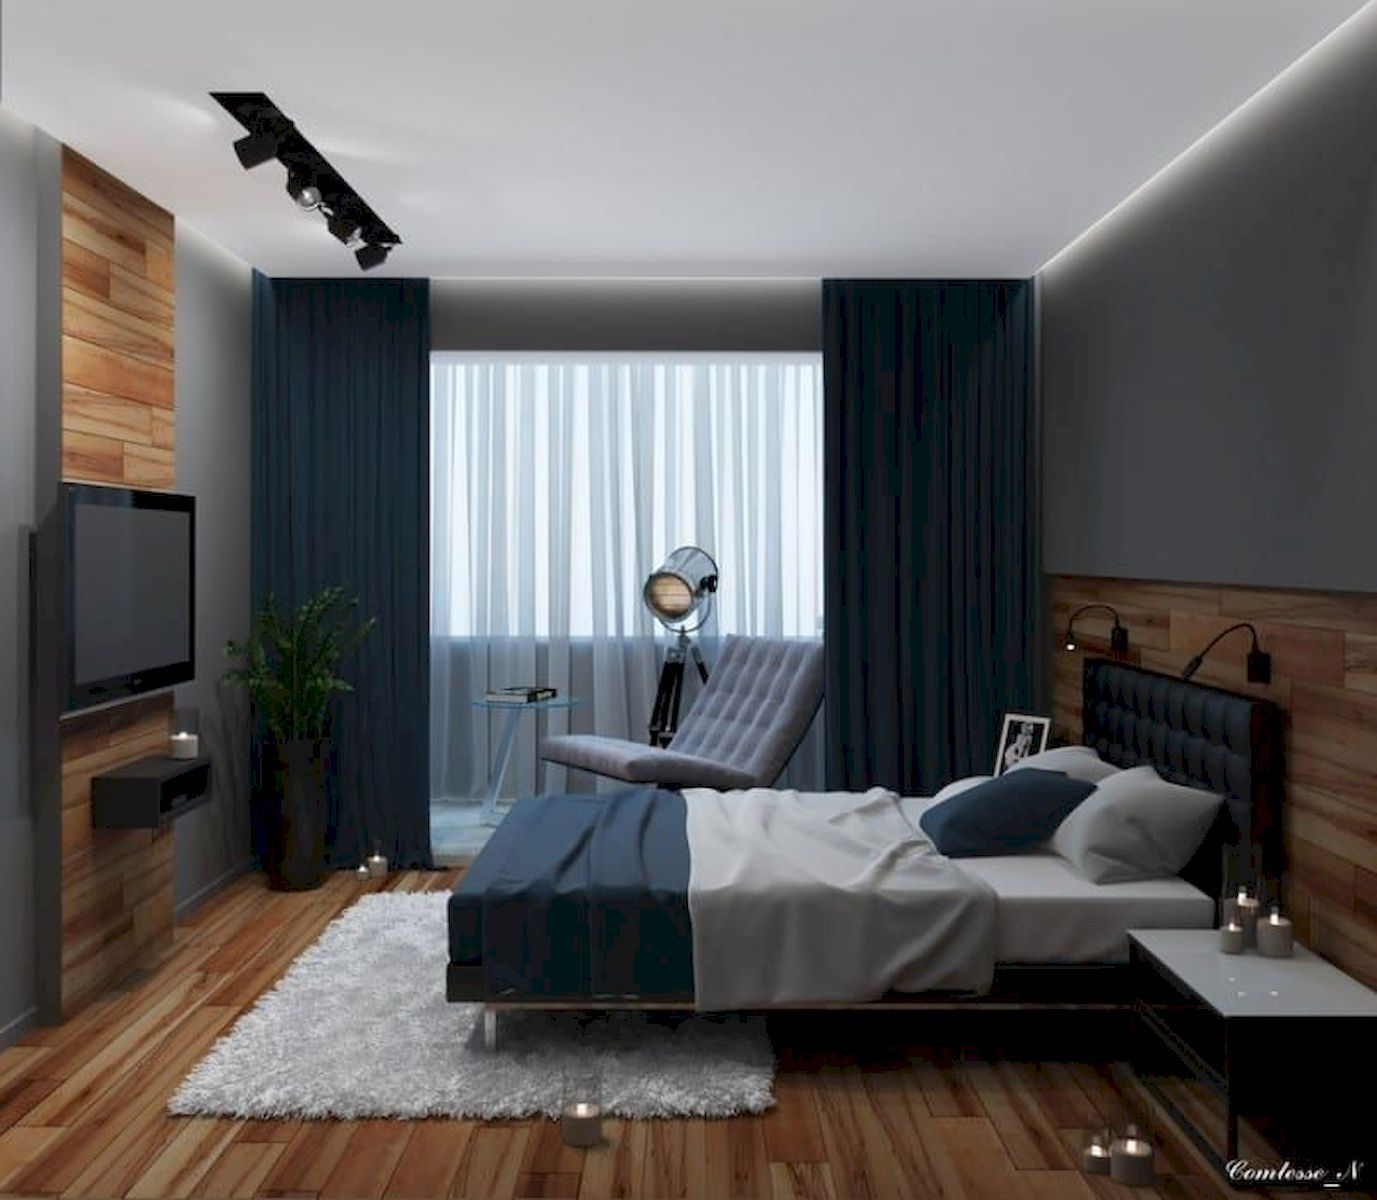 80 Wow Completely Redecorate Bedroom Decorating Ideas Yellowraises Redecorate Bedroom Mens Room Decor Home Bedroom